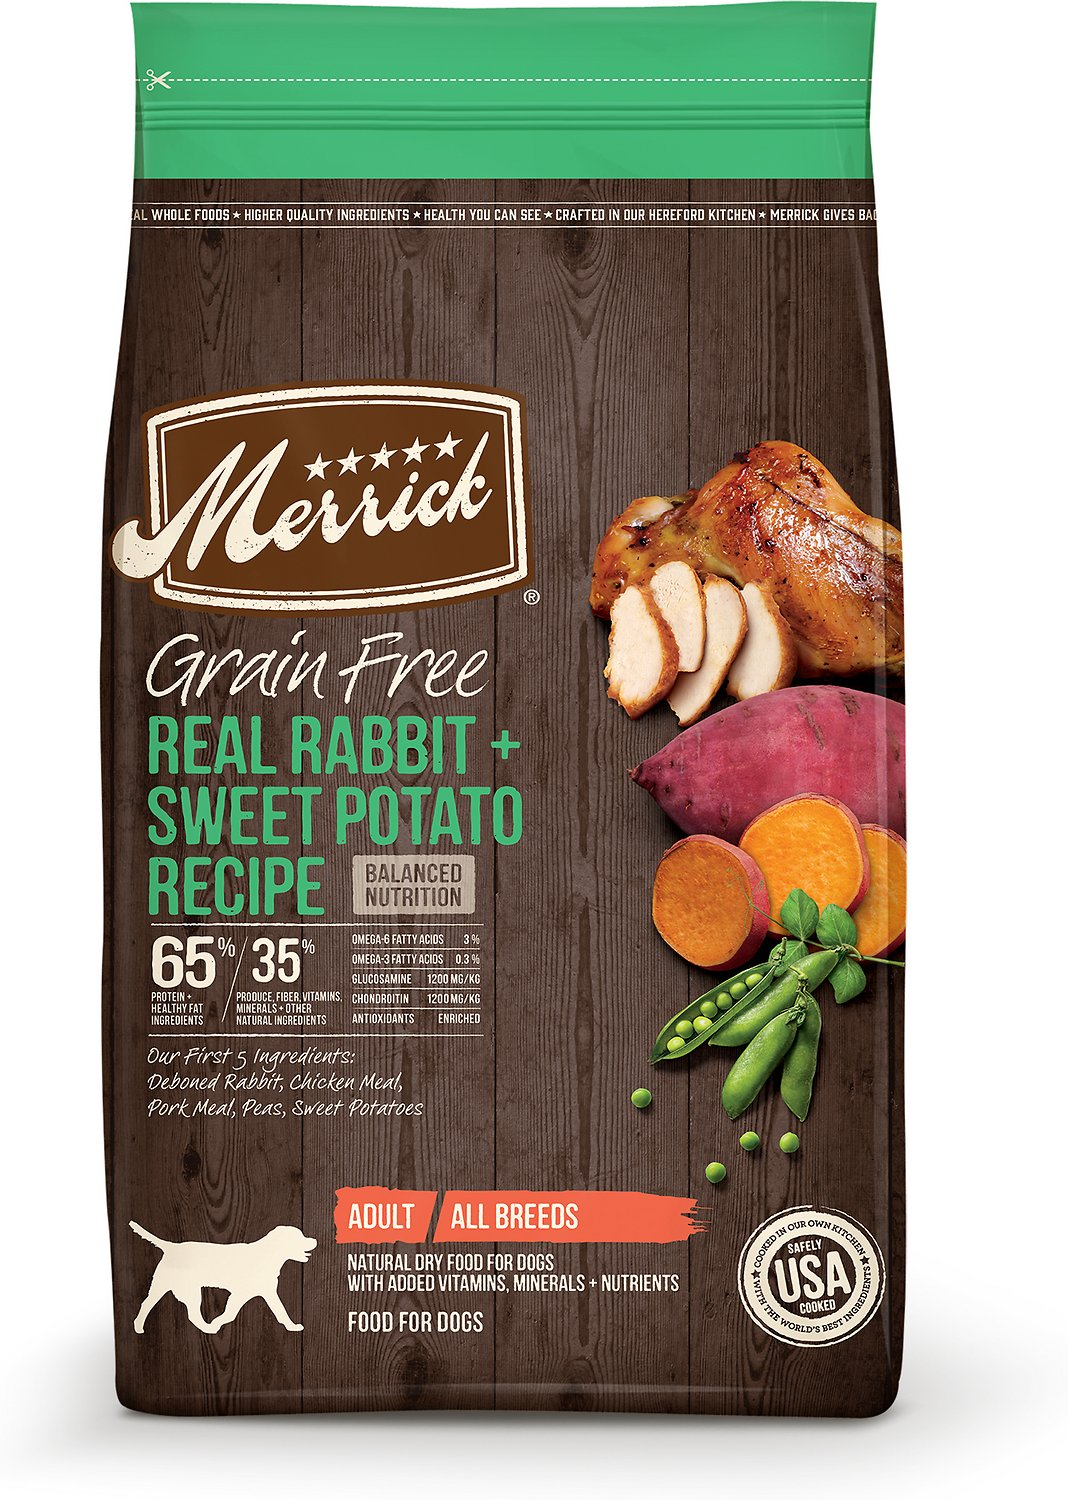 Merrick Grain-Free Real Rabbit + Sweet Potato Recipe Dry Dog Food Image